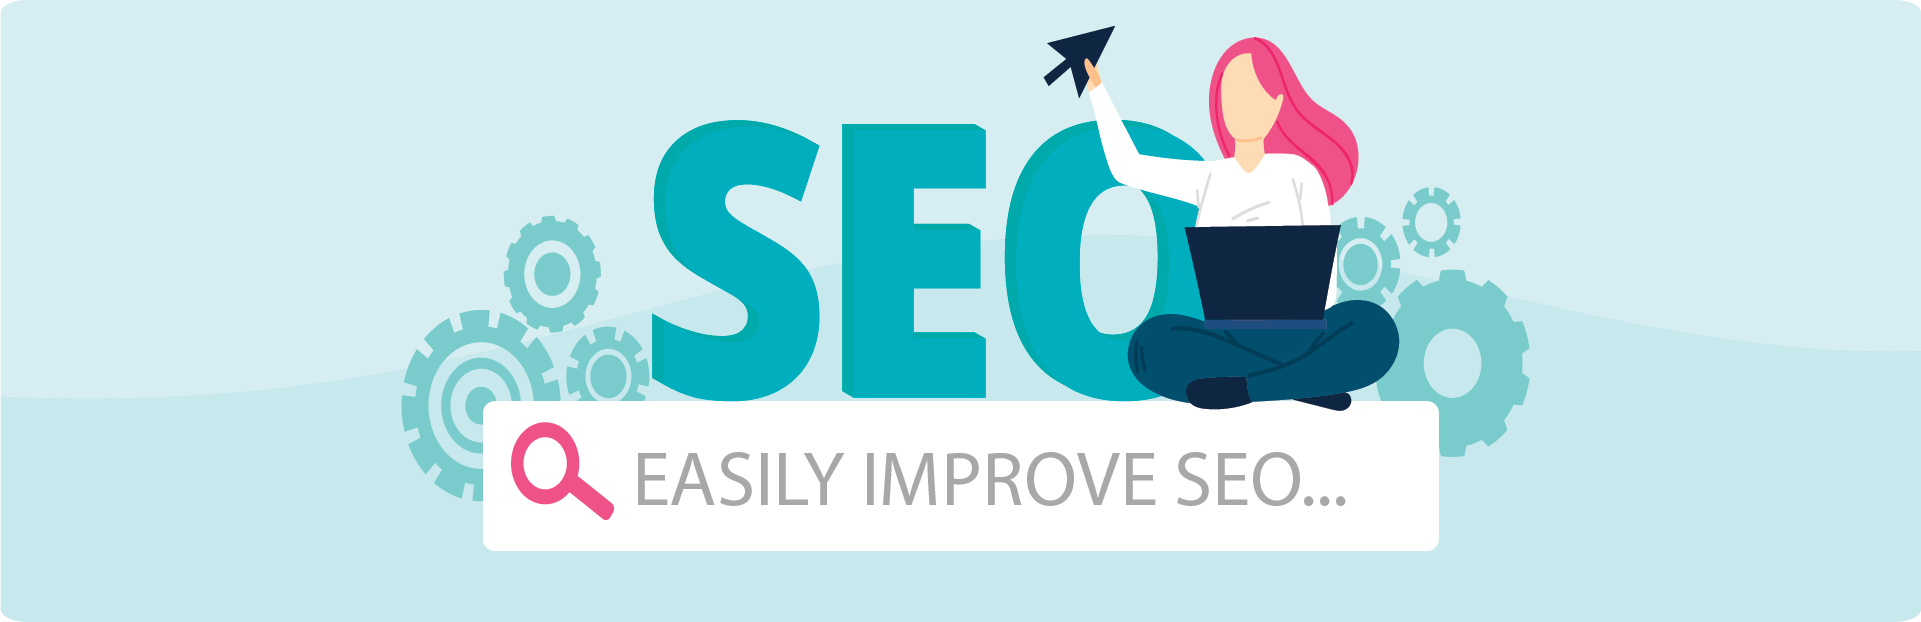 7-Ways-to-Easily-Improve-SEO-for-your-Business